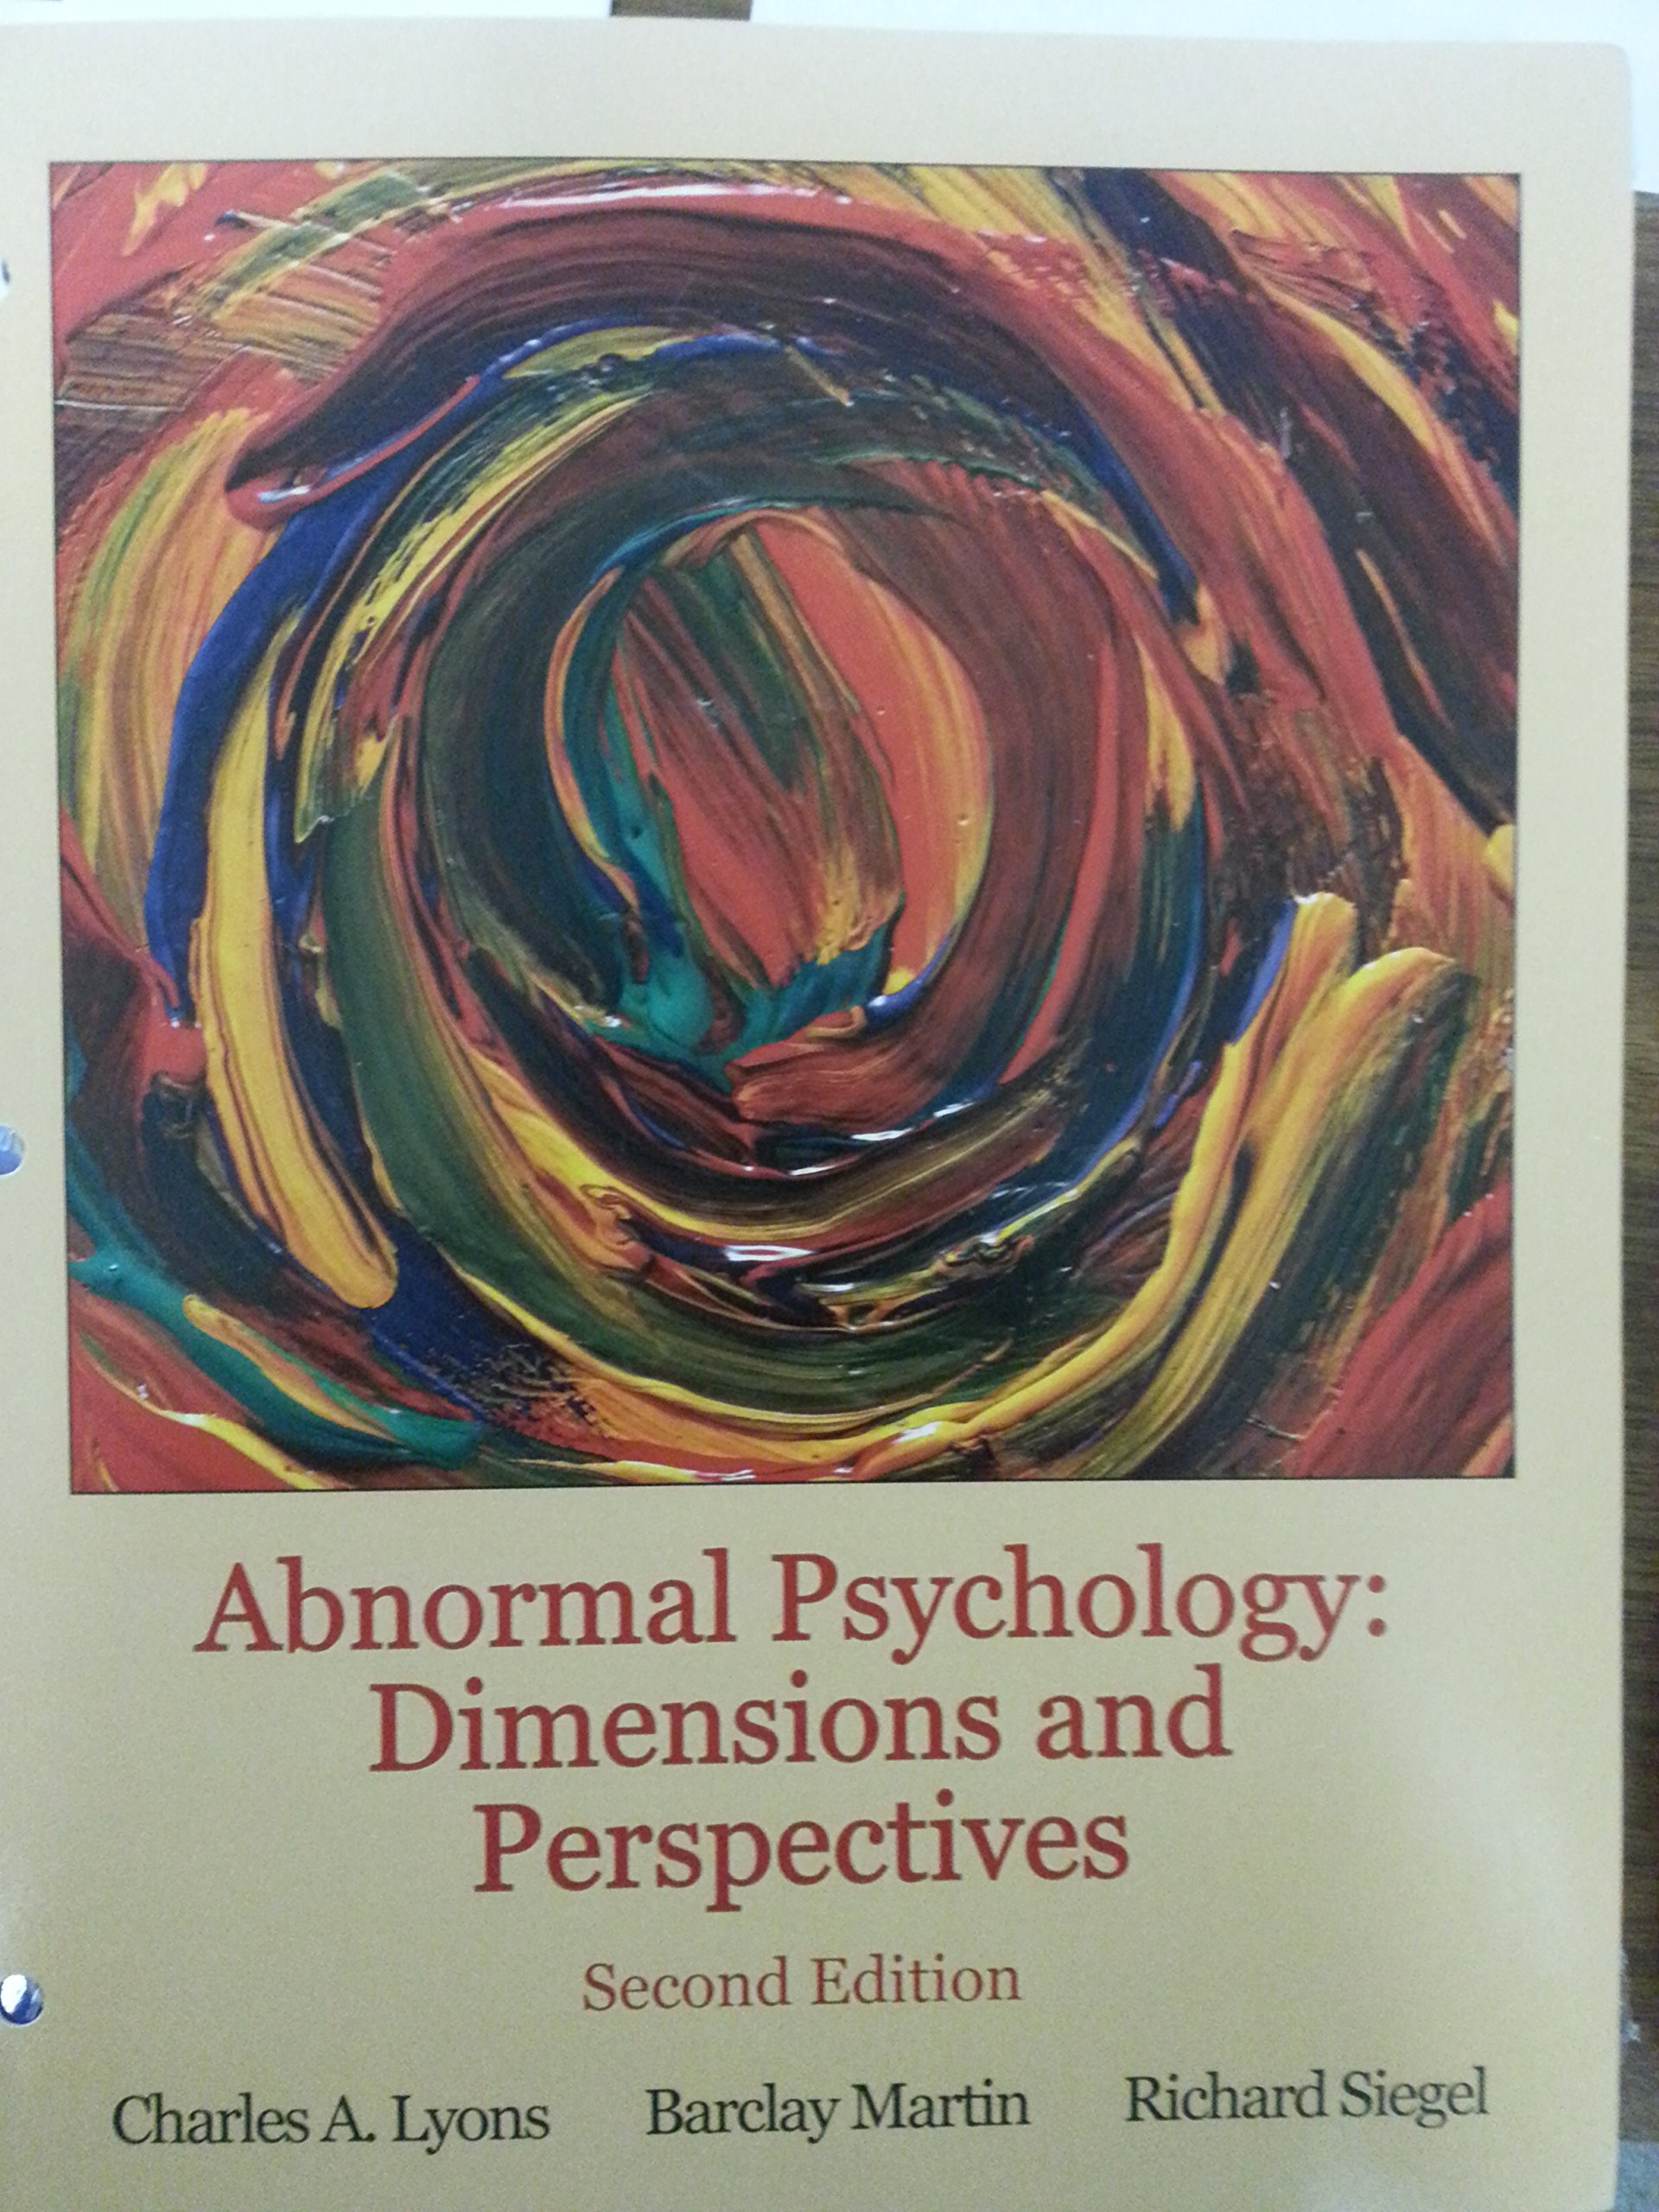 case study in abnormal psychology essay Fundamentals of abnormal psychology comer, ronald j abnormal psychology whitbourne, susan krauss this casebook presents comprehensive coverage of 23 high interest cases that include topics such as eating disorders, gender identity disorder, borderline personality, and posttraumatic.